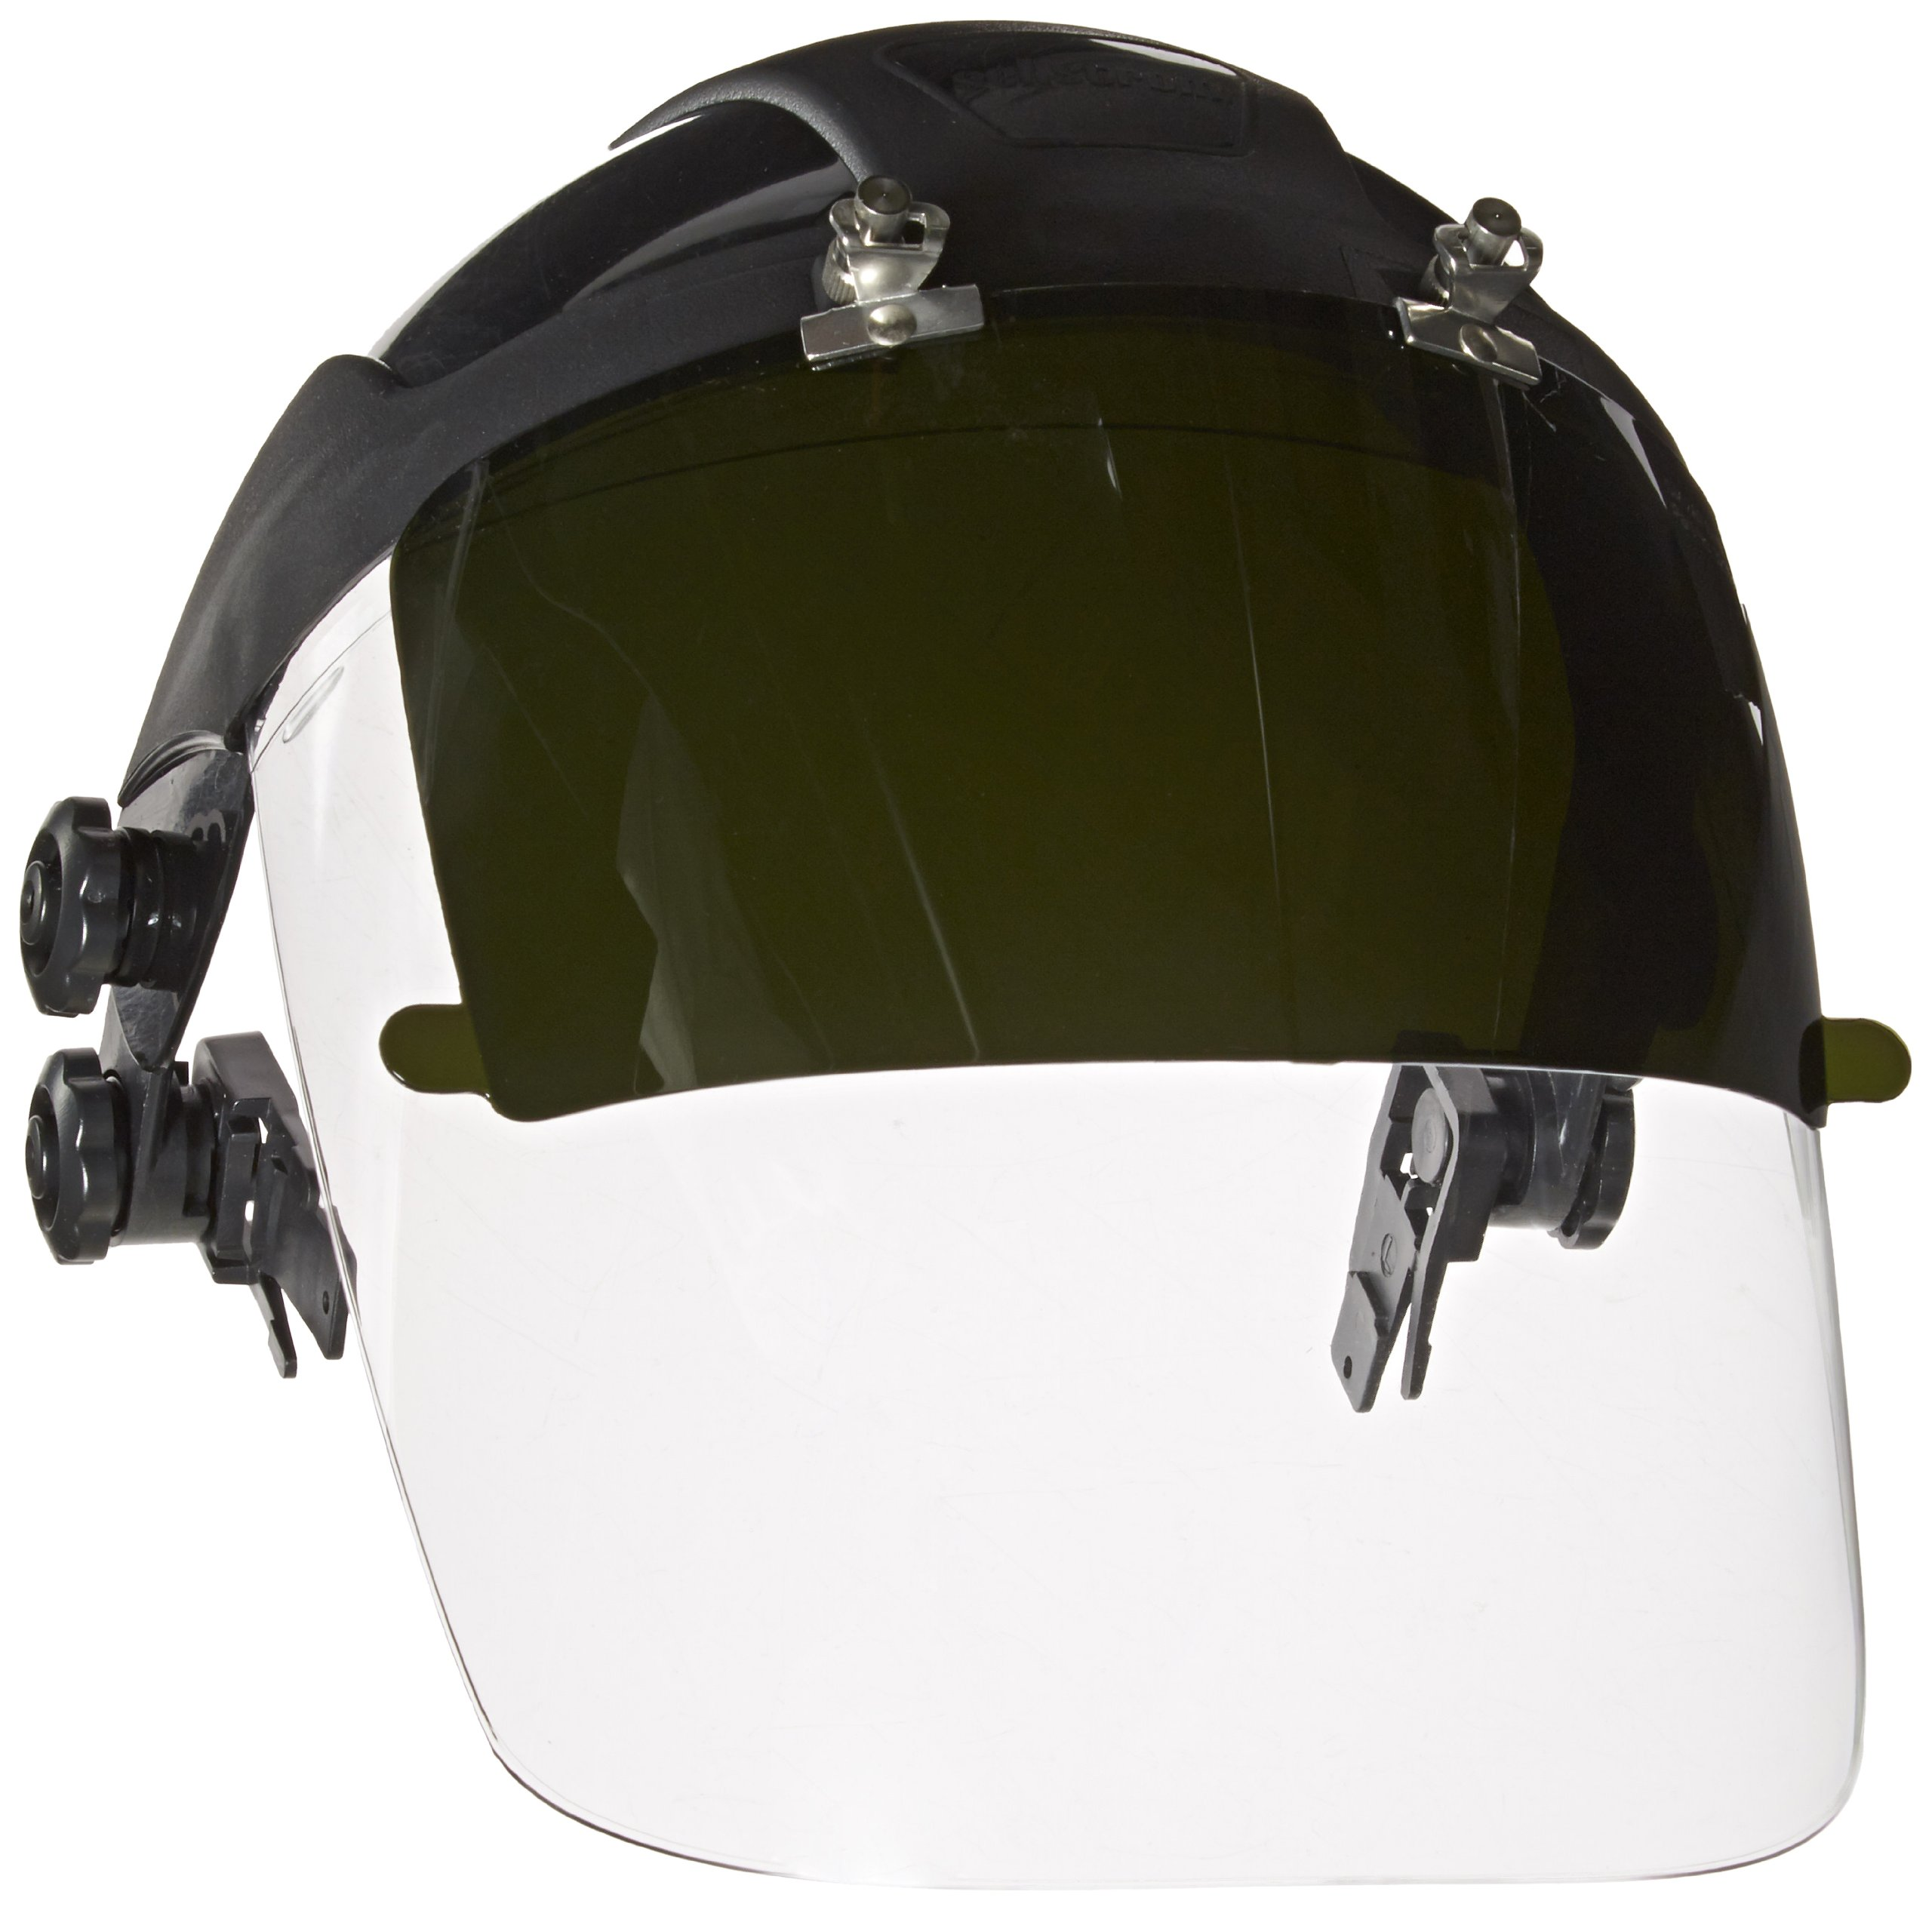 Sellstrom 32162 DP4 Black Crown and Clear Anti-fog Window/Shade 6 IR Flip Front Window Protective Faceshield with Universal Slot Adapter